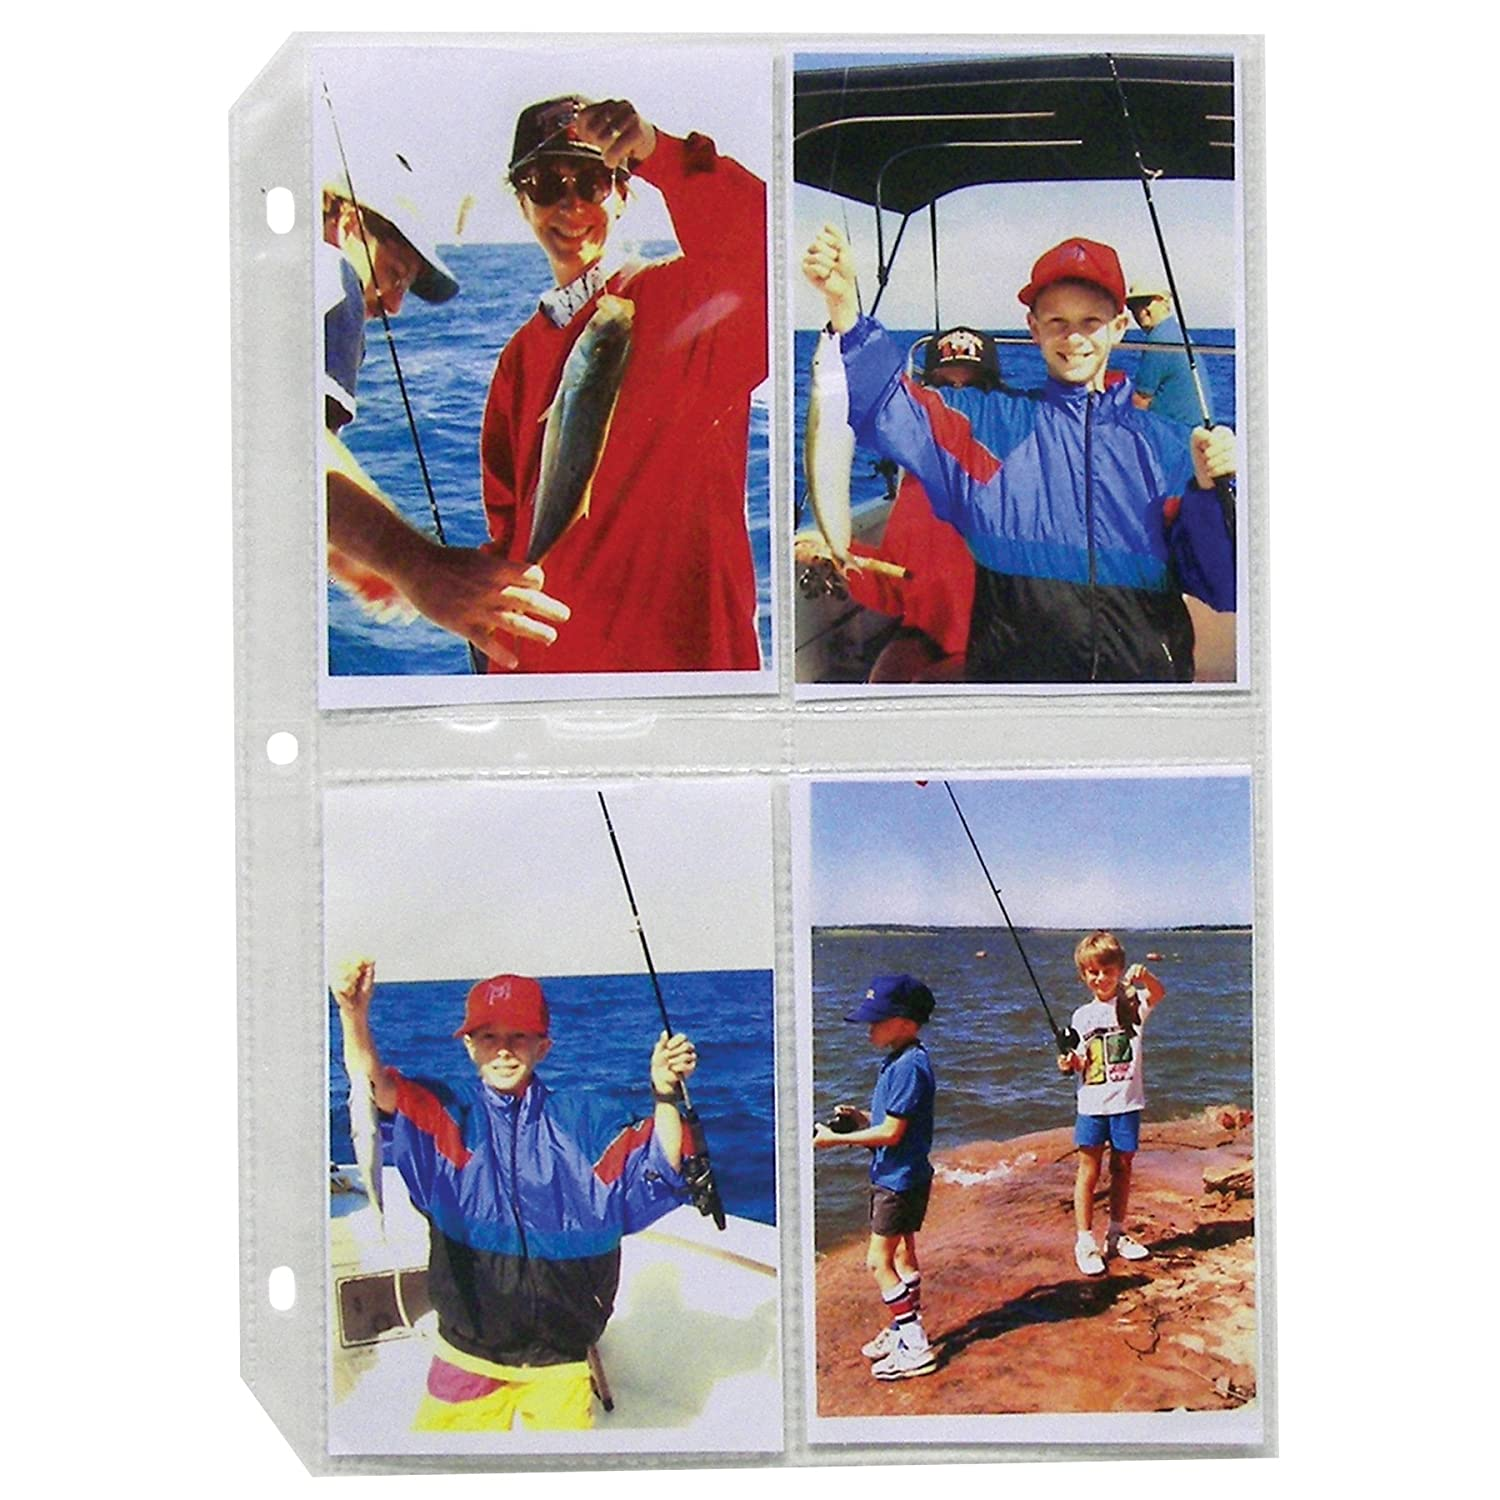 C-Line Ring Binder Photo Storage Pages for 3.5 x 5 Inch Photos, Top Load, 8 Photos/Page, 50 Pages per Box (52584) C-Line Products Inc.